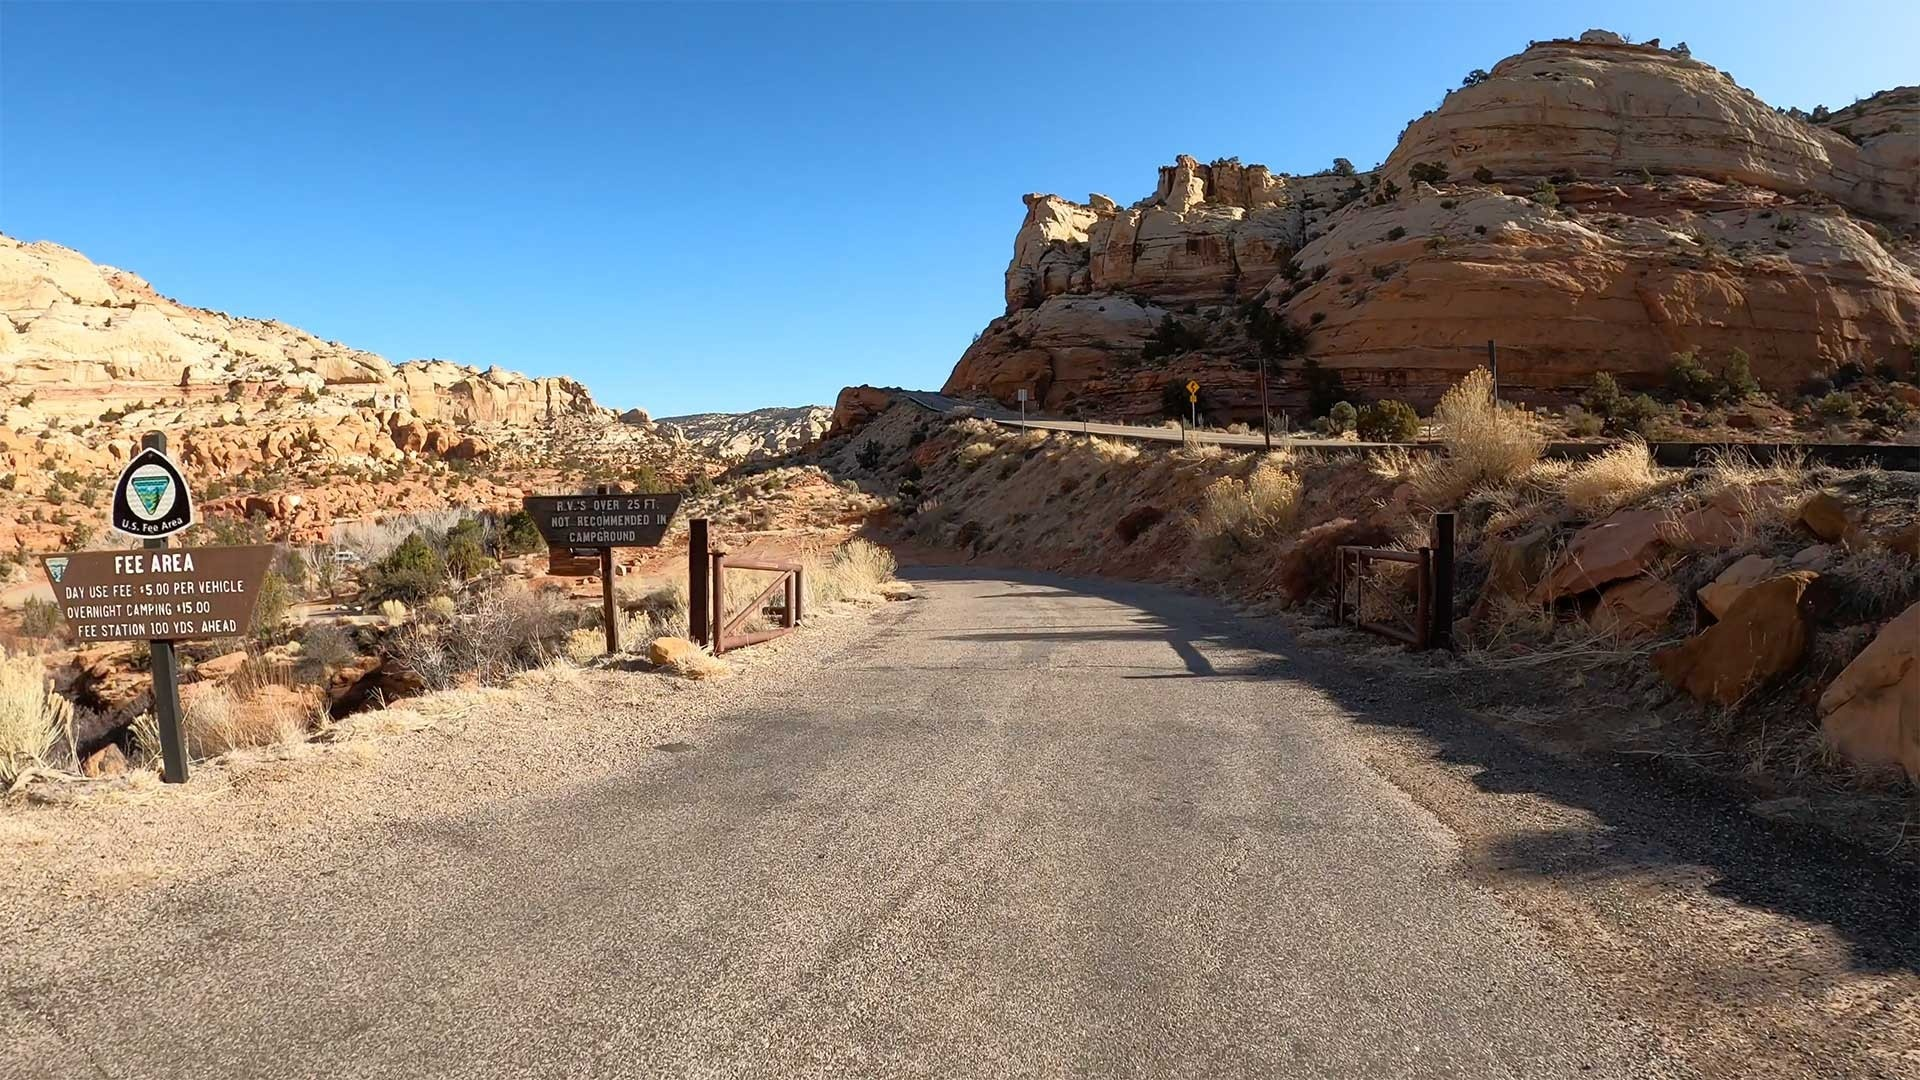 The entrance to the Lower Calf Creek Falls Parking Lot